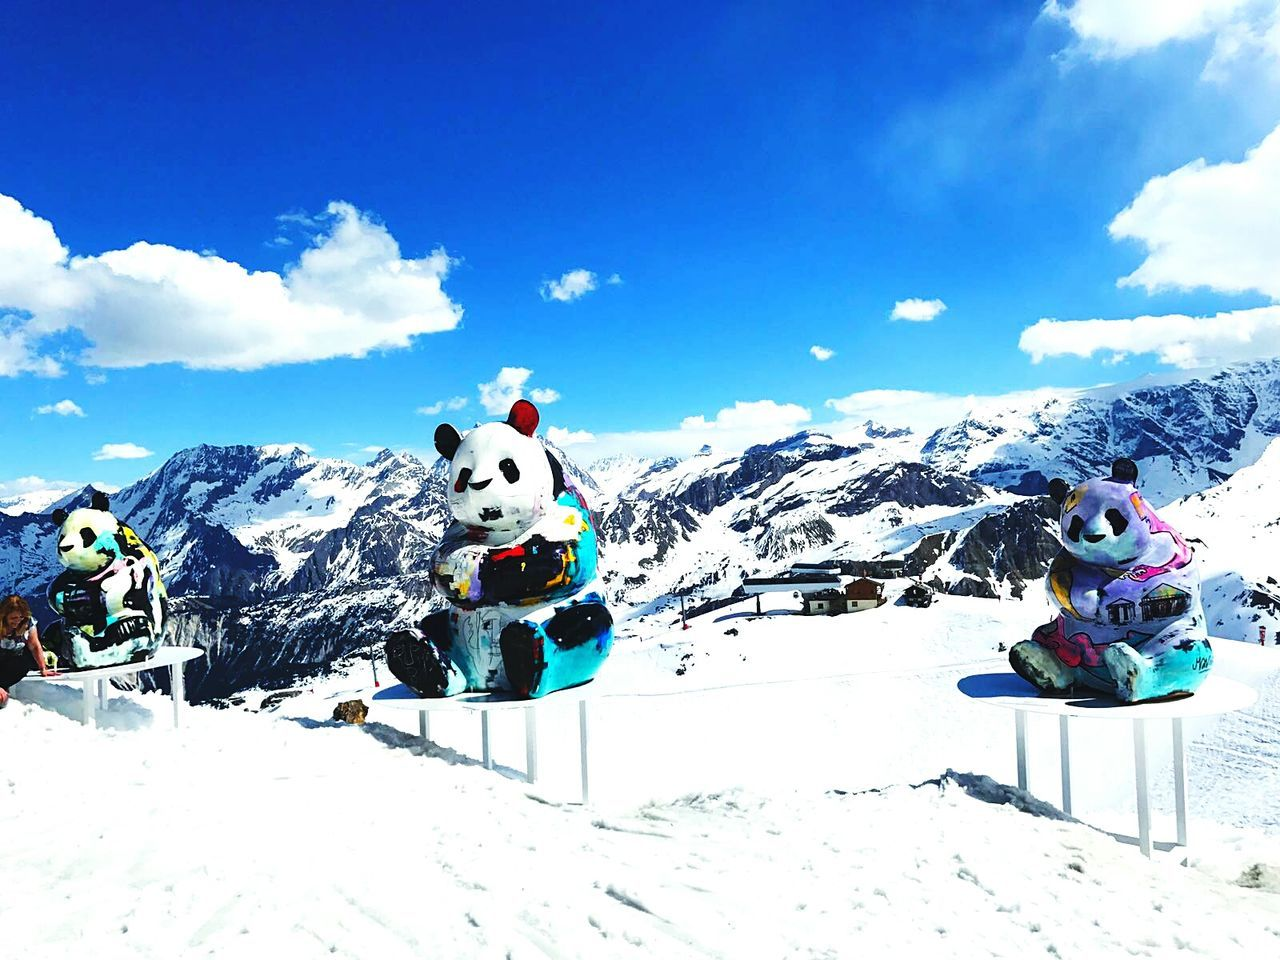 Snow Ski Holiday Vacations Landscape Outdoors Mountain Peak Extreme Sports Sky Day Courchevel In Photos  Mountain Sport Alpes France The Great Outdoors - 2017 EyeEm Awards